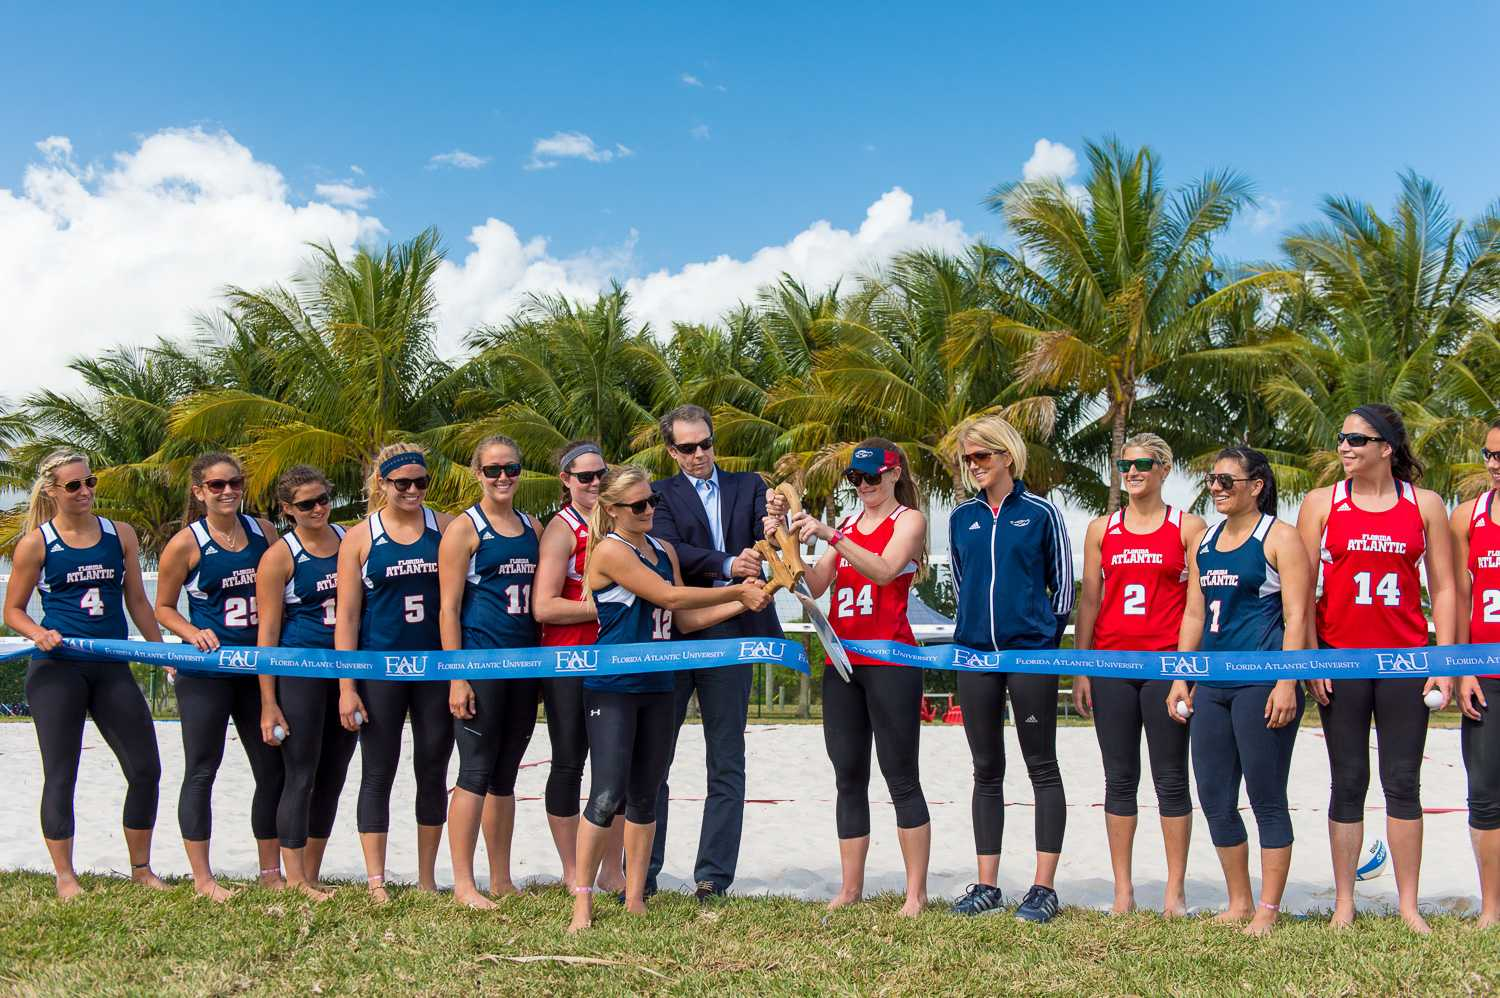 FAU sand volleyball captains Natalie Fraley (12) and Mandy McIntosh (24) are joined by FAU President John Kelly to cut the ribbon to officially open the new sand volleyball courts.